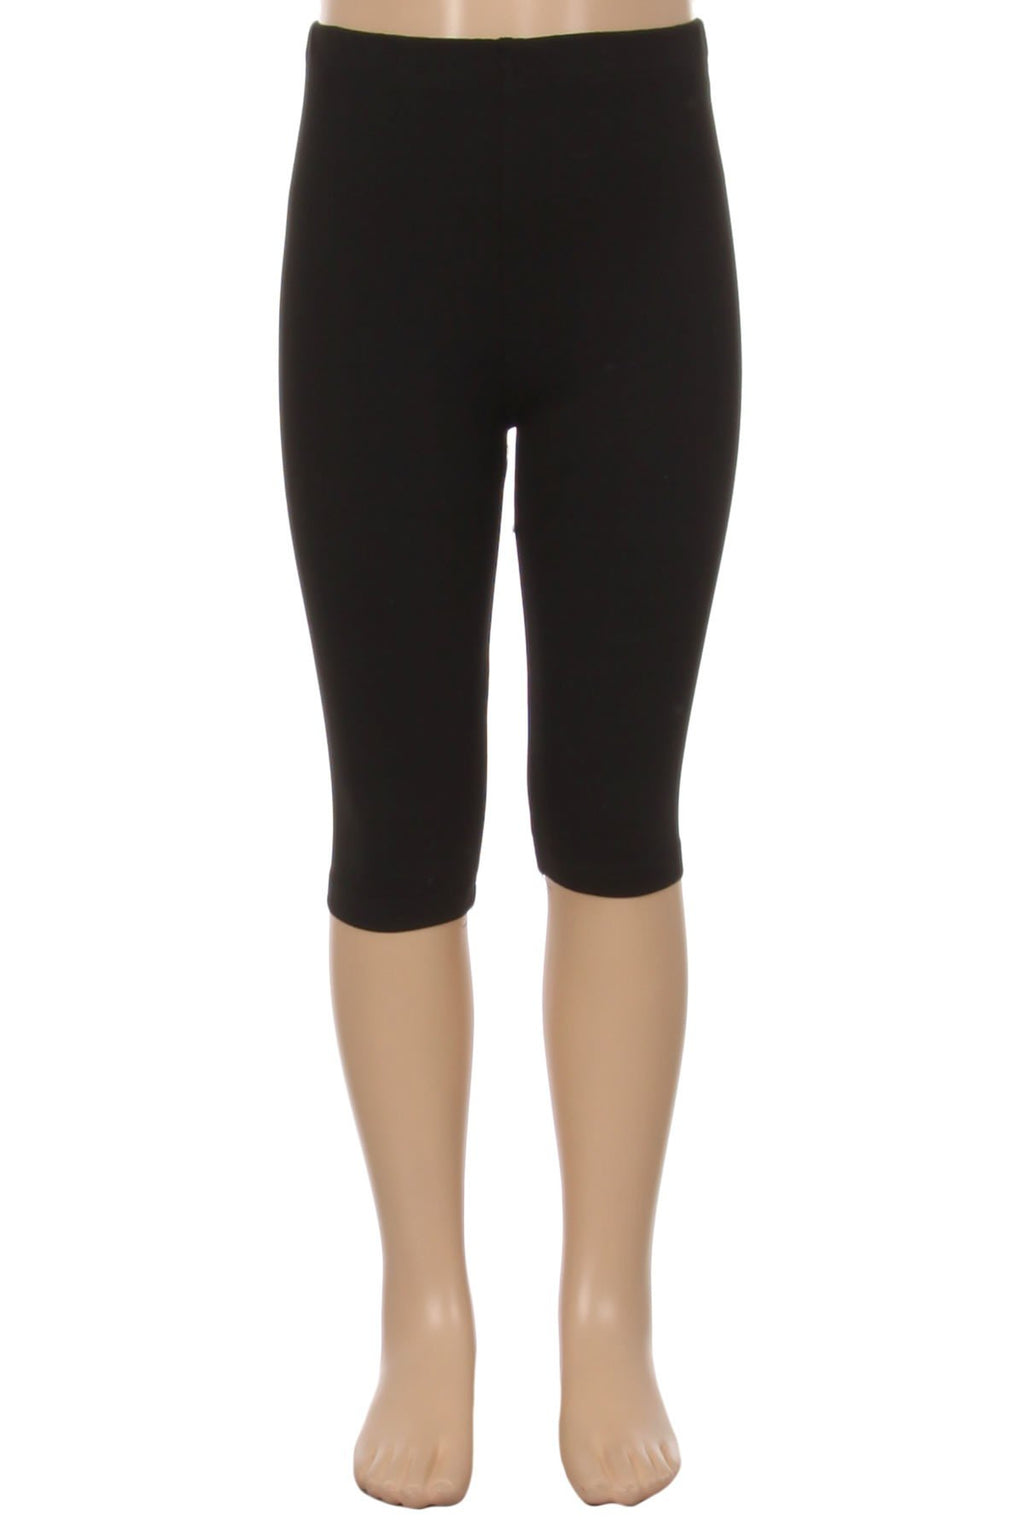 Girl's Capri Leggings Solid Black: S/L - MomMe and More